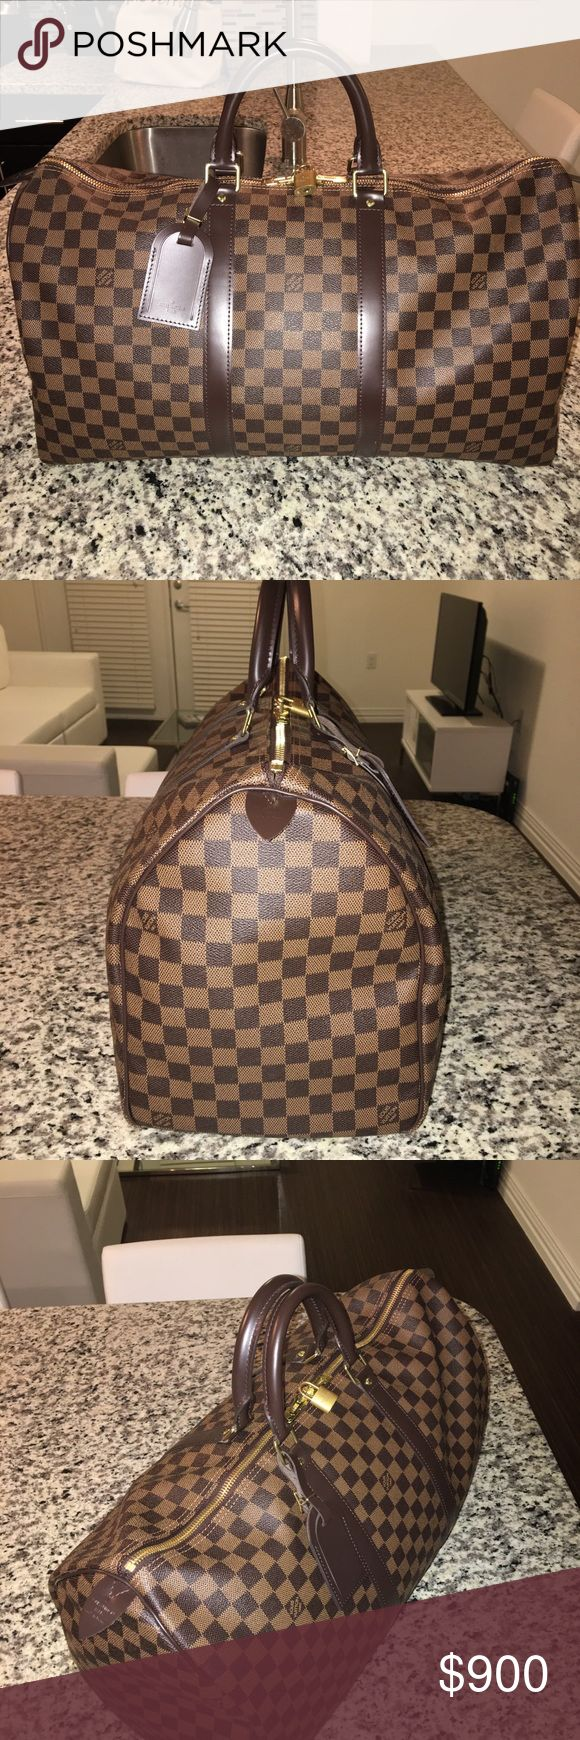 Louis Vuitton Keepall 45 Purchased on 2/17/17. Little to no use and in excellent condition. Louis Vuitton Bags Luggage & Travel Bags